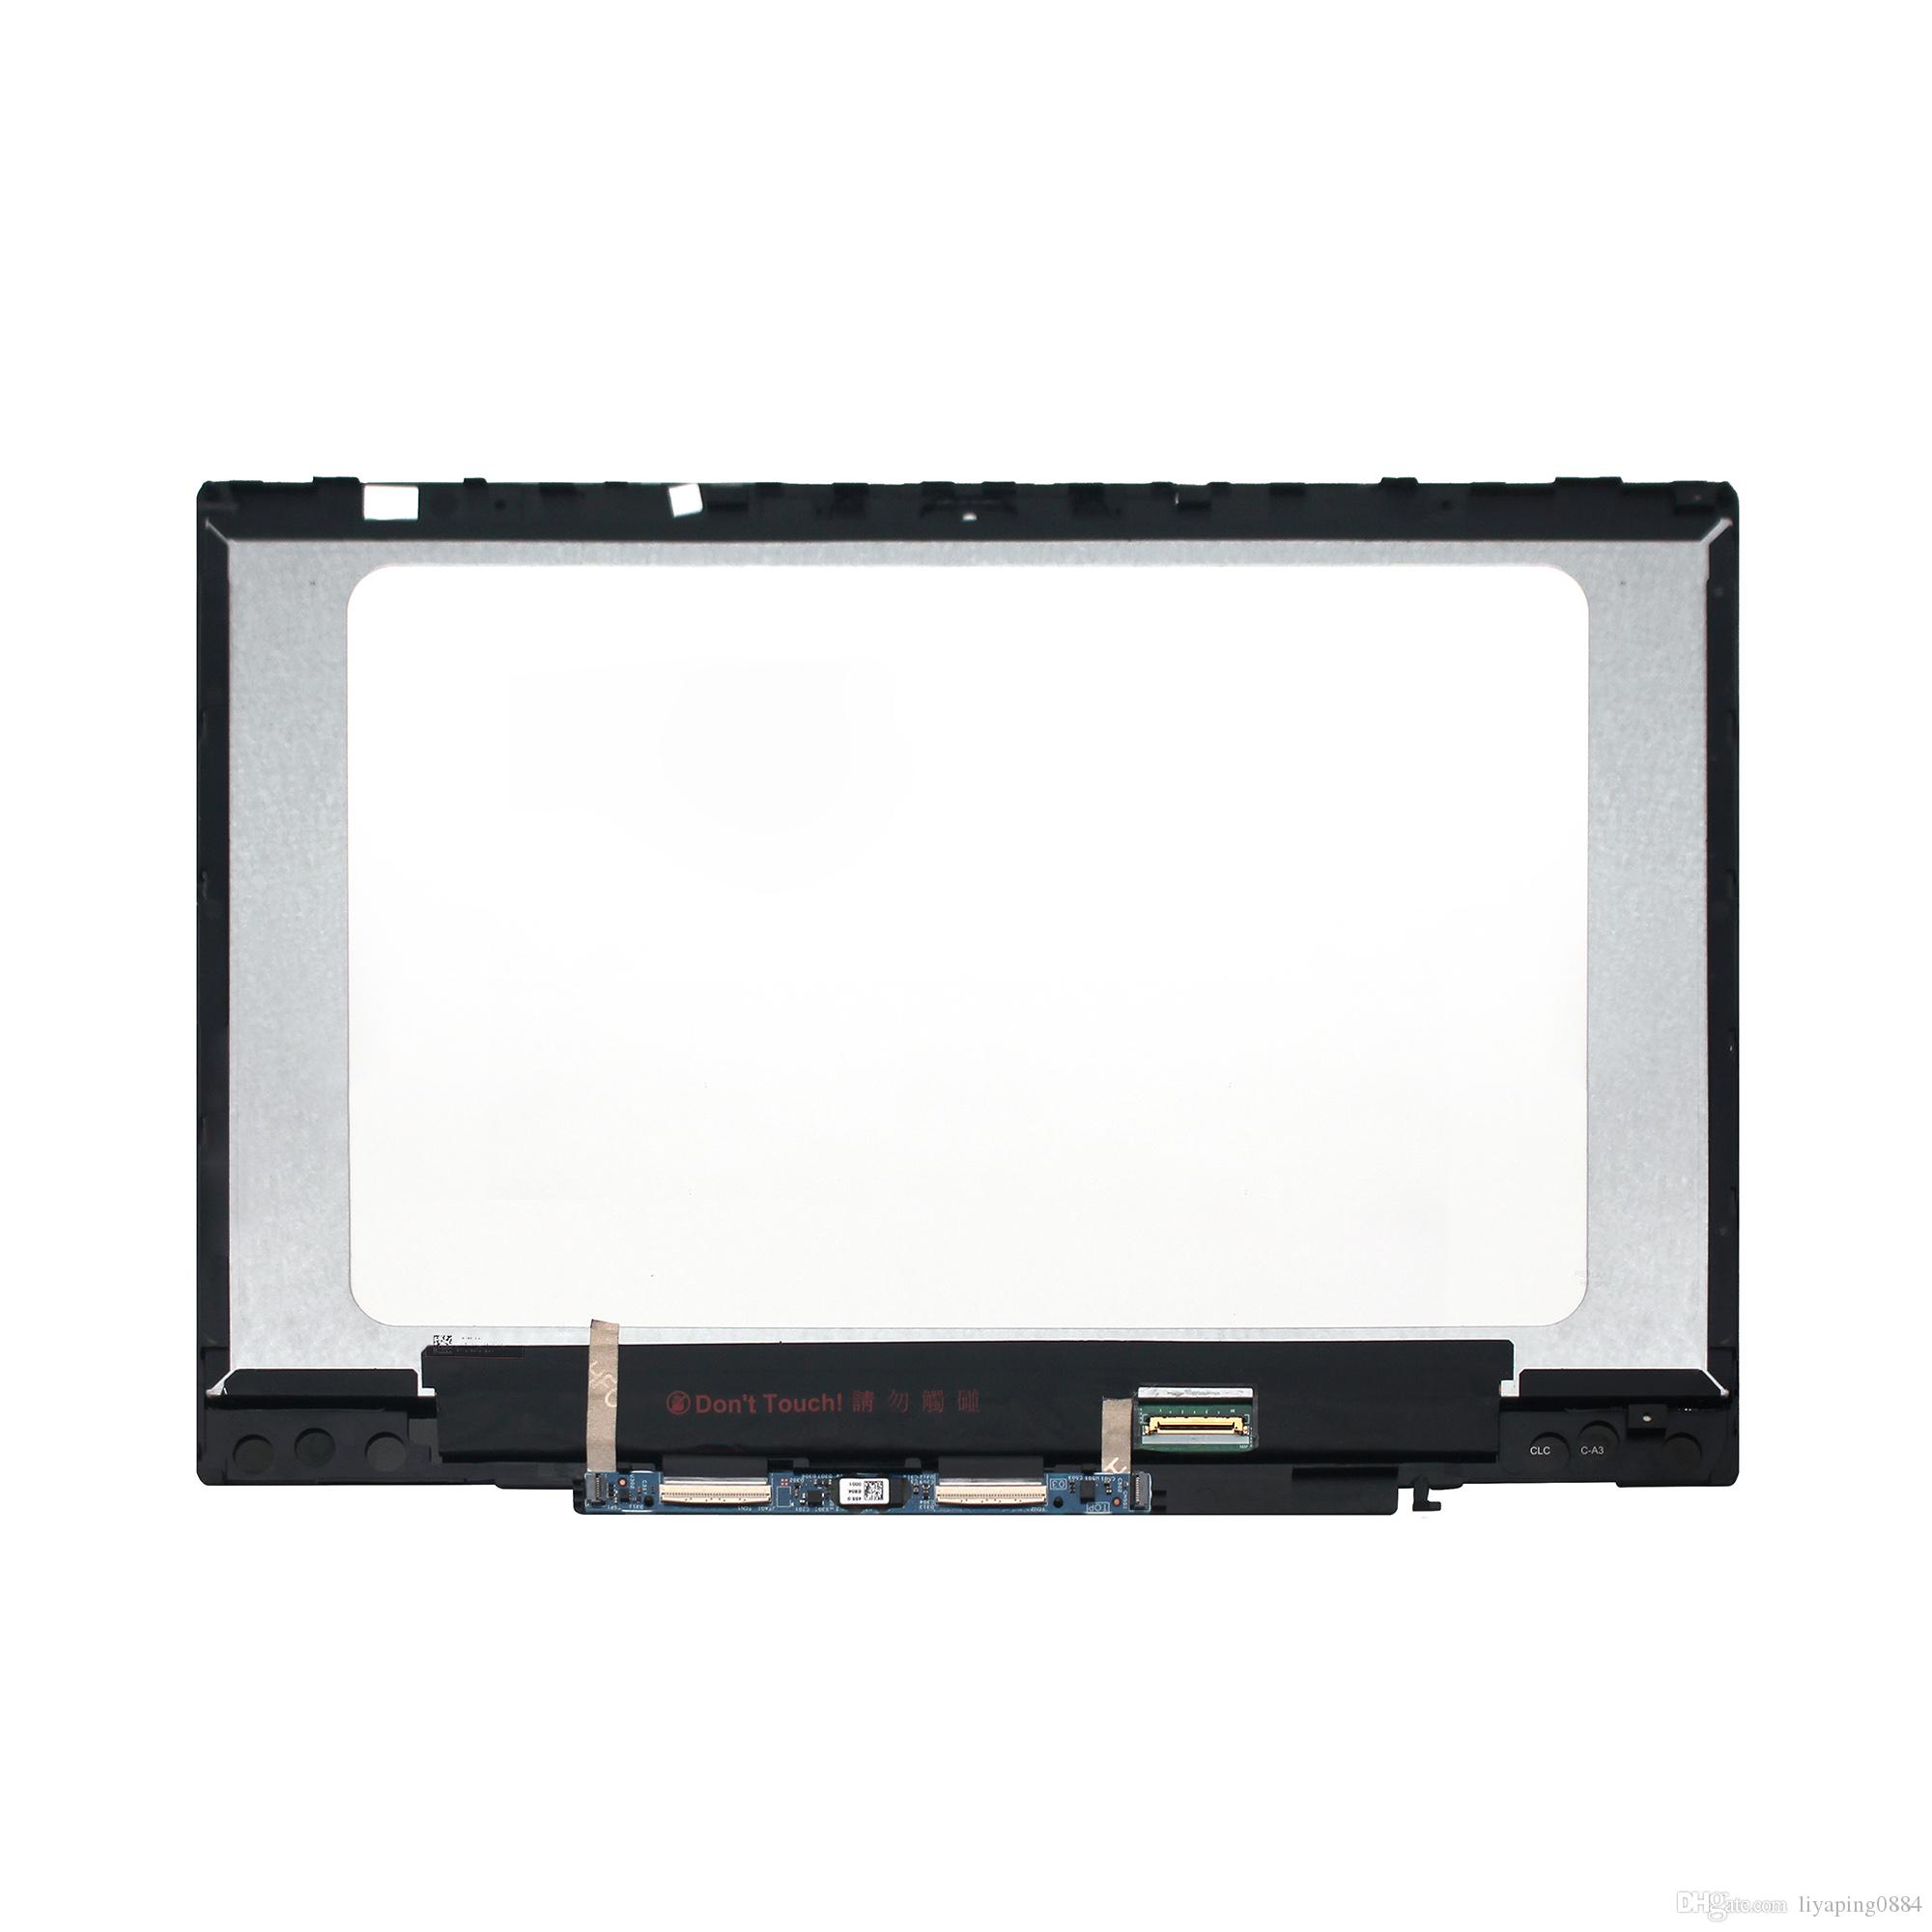 L20553-001 L20559-001 Nuovo originale completa HP X360 14,0 '' LCD HD LED Touch Screen Digitizer Assembly Bezel